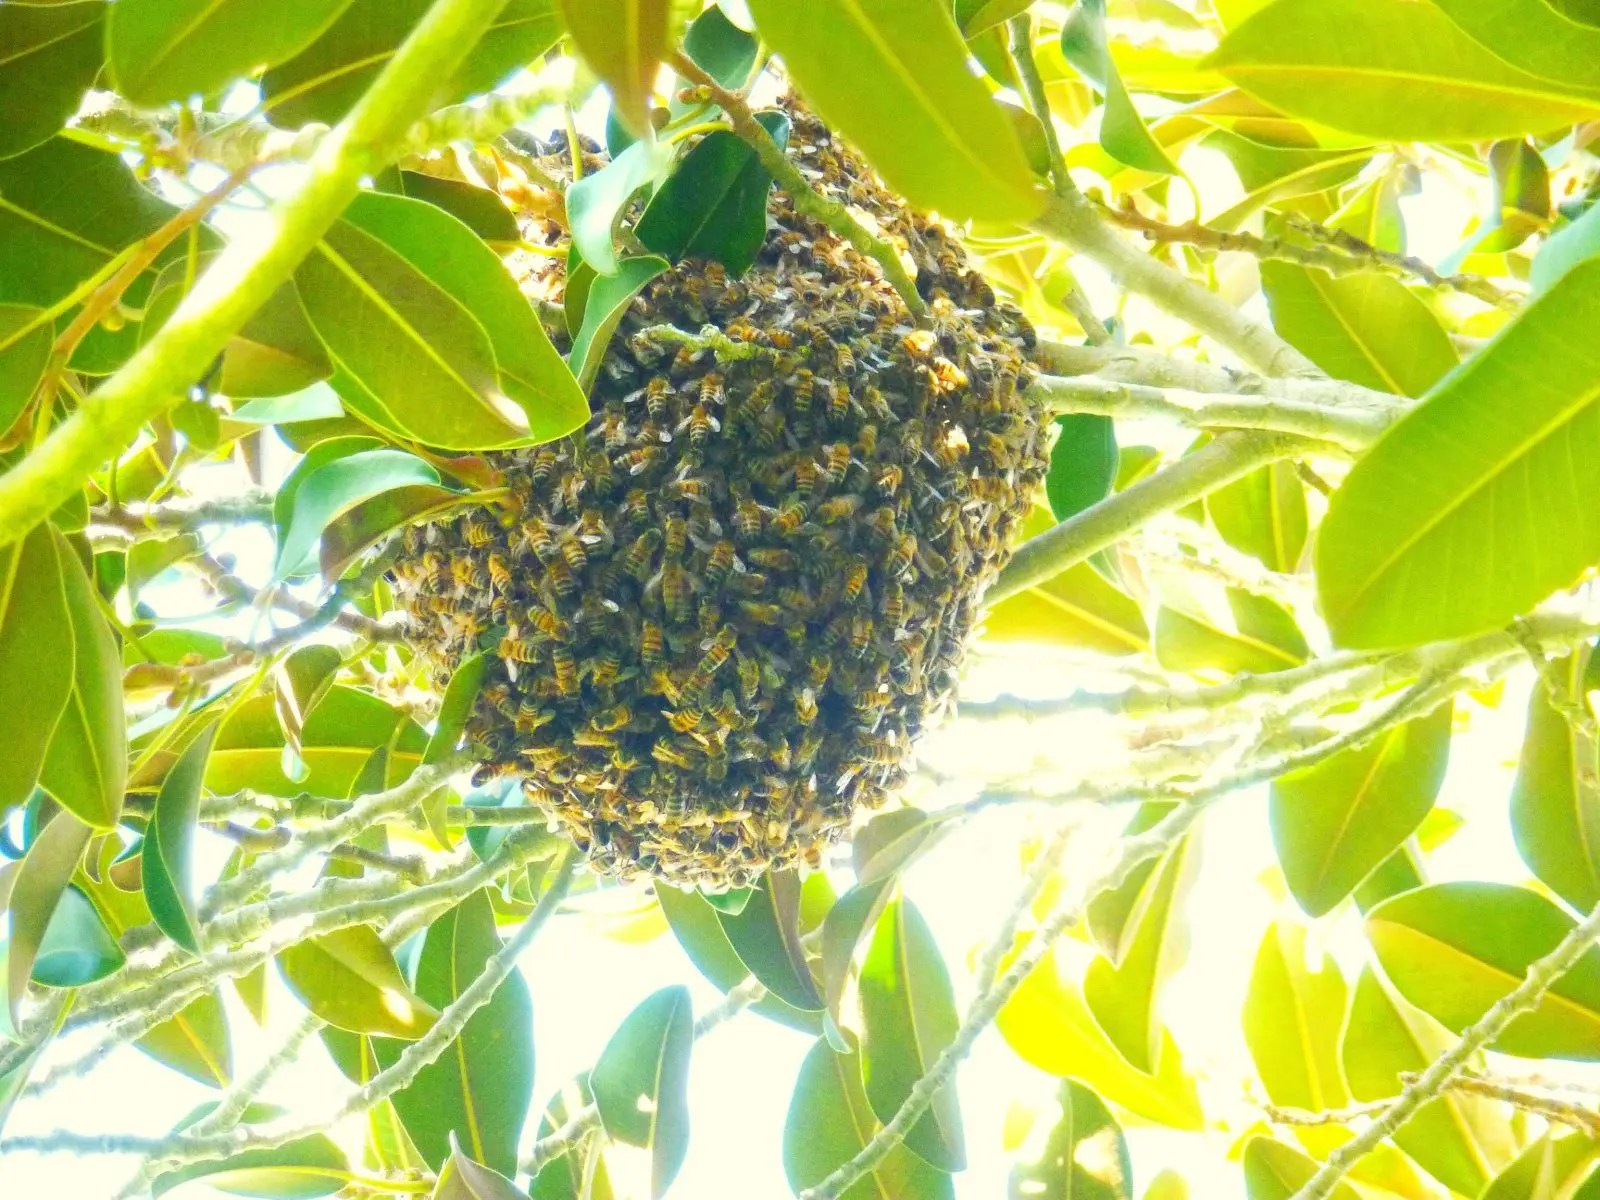 hundreds of honey bees form a spherical swarm within the branches of a tree